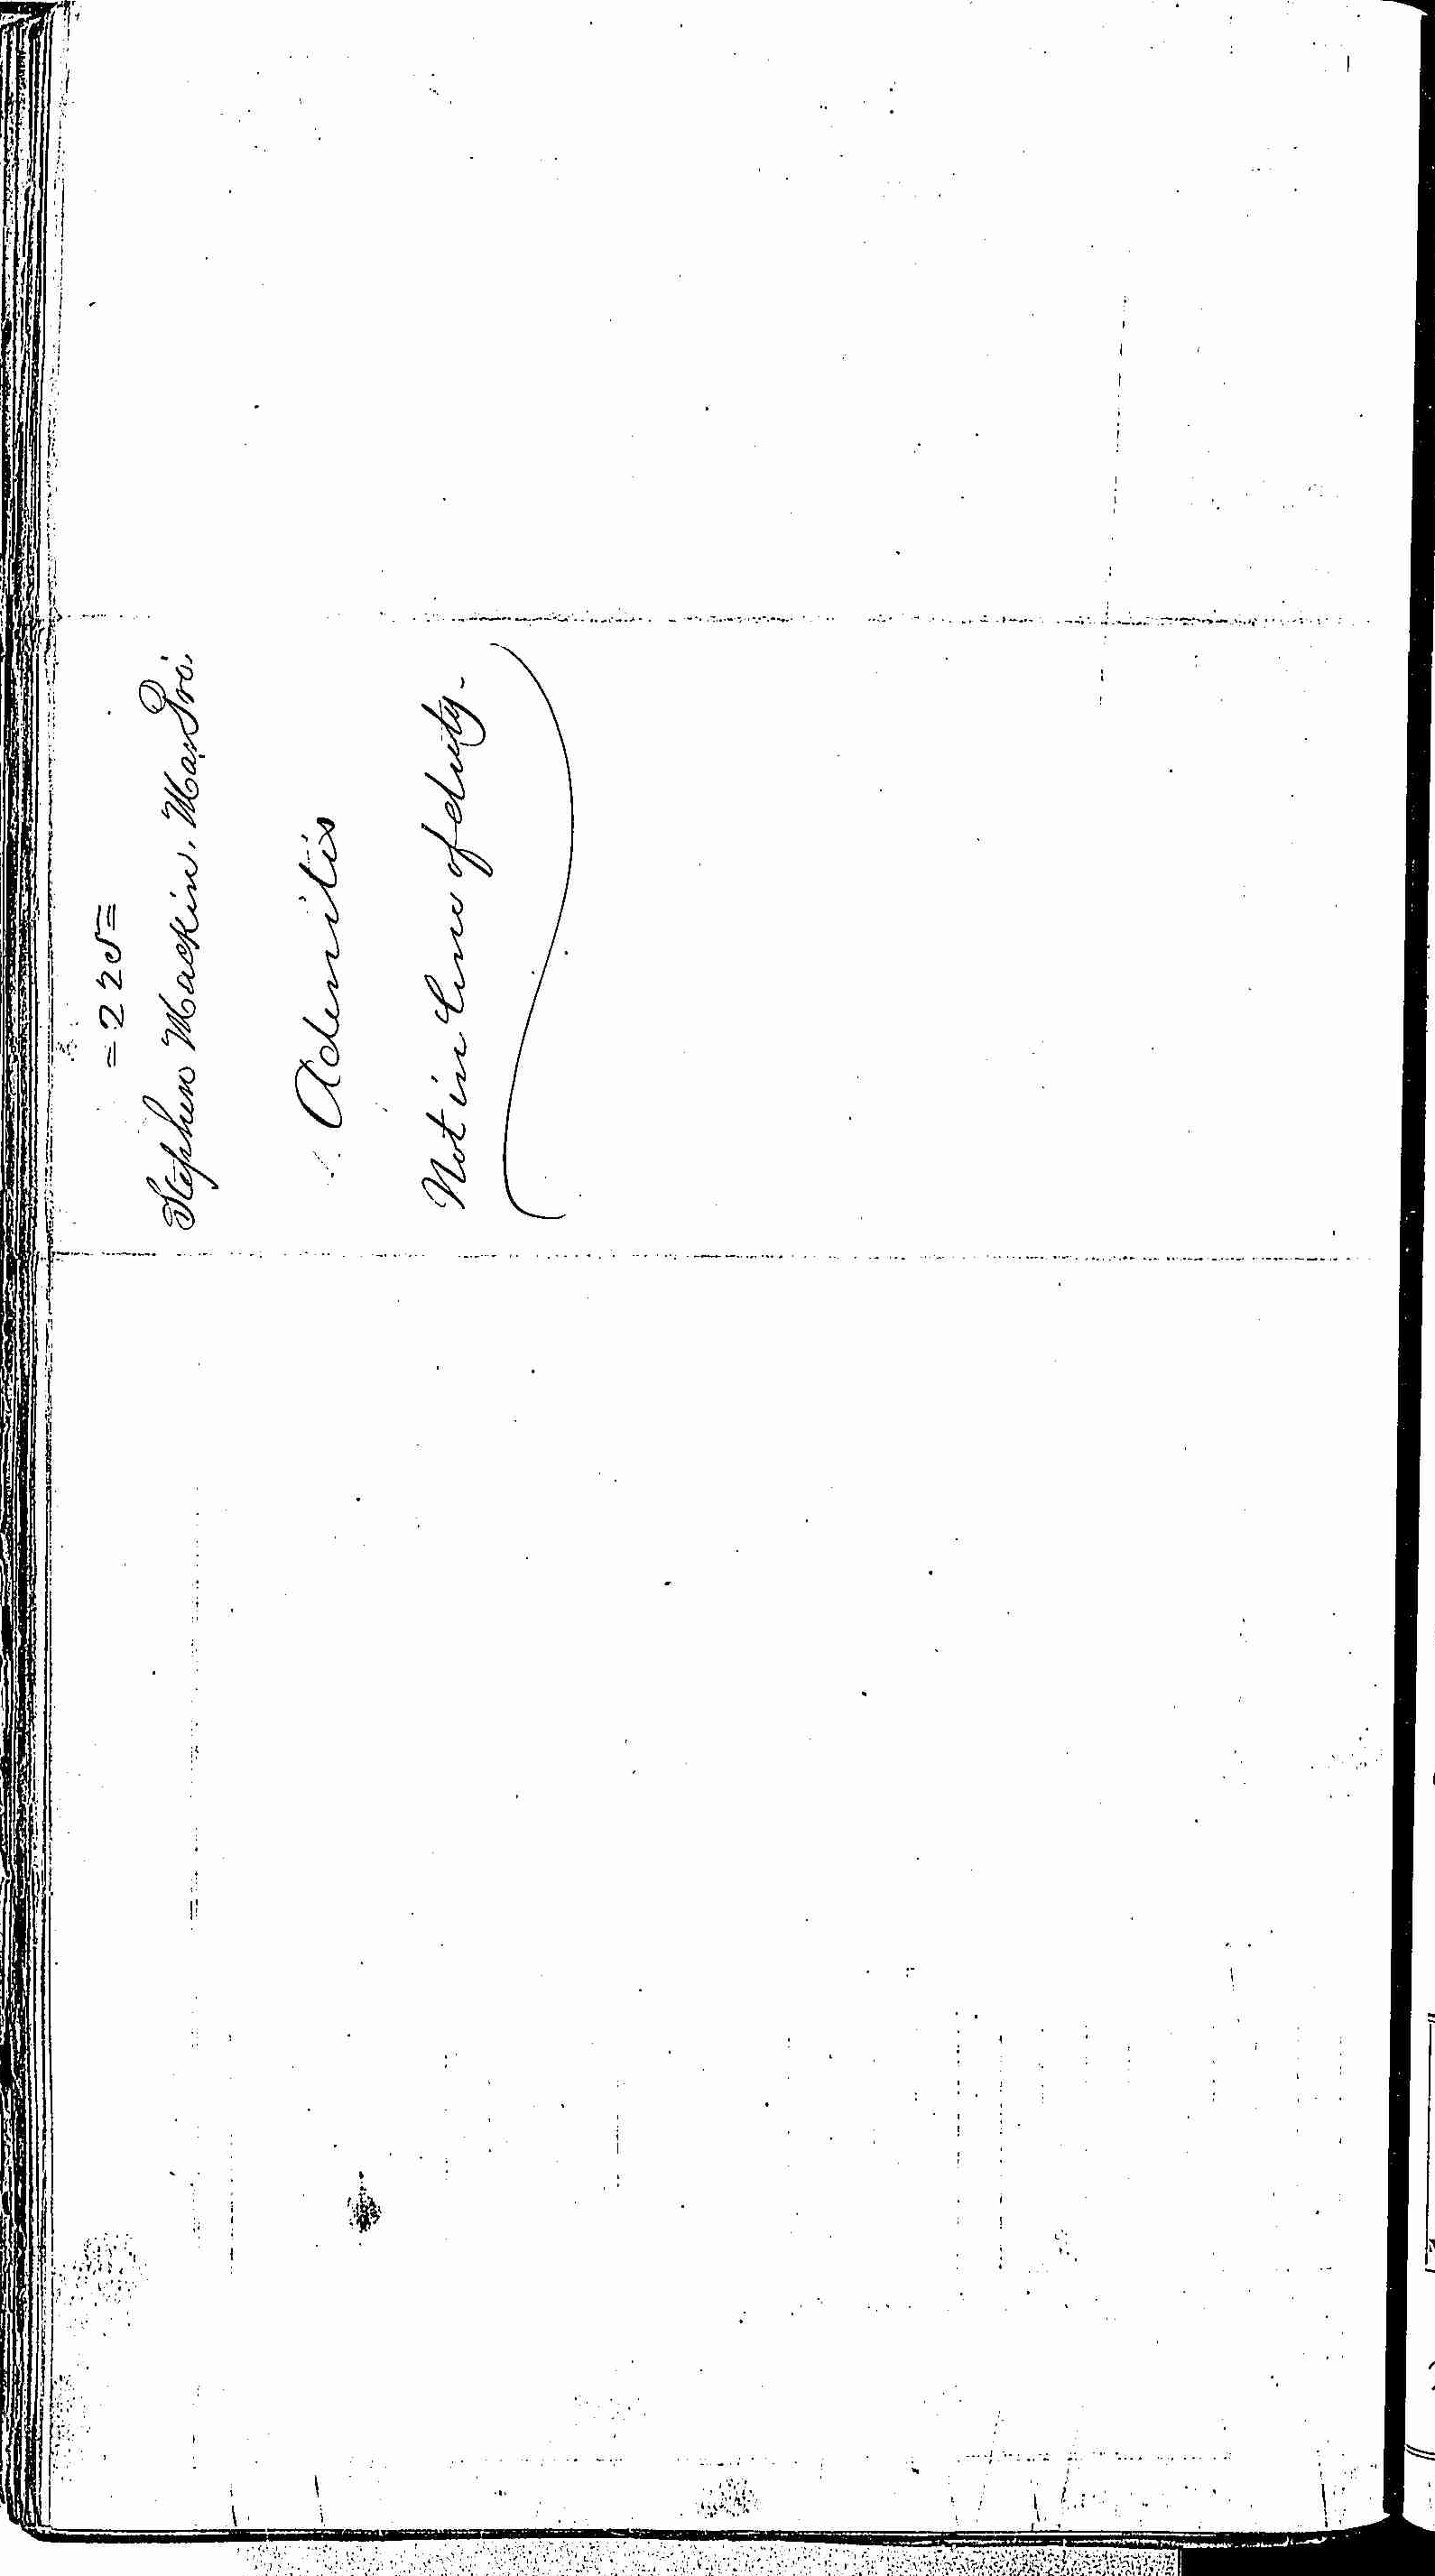 Entry for Stephen Mackin (page 2 of 2) in the log Hospital Tickets and Case Papers - Naval Hospital - Washington, D.C. - 1866-68